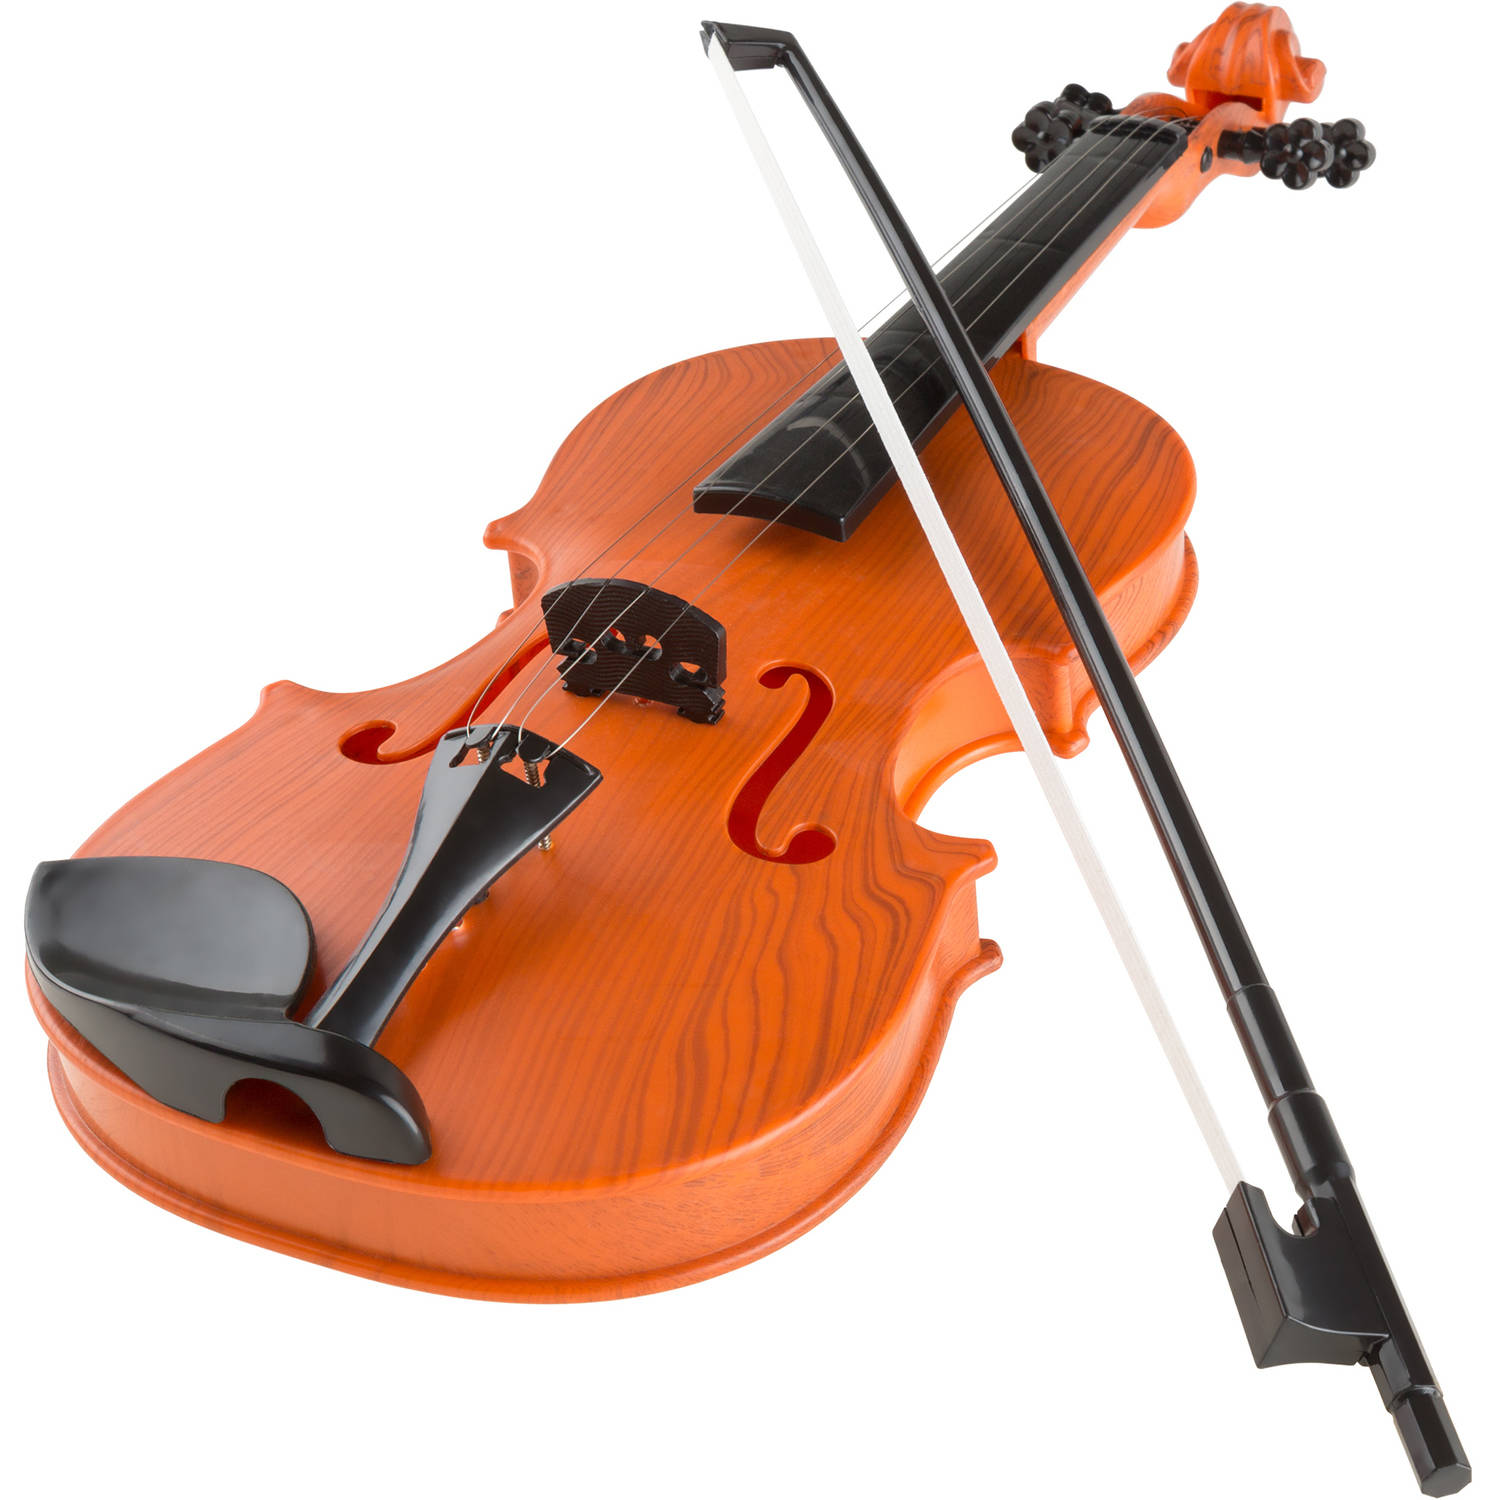 Musical Toy Violin with Bow by Hey! Play! - Battery-operated